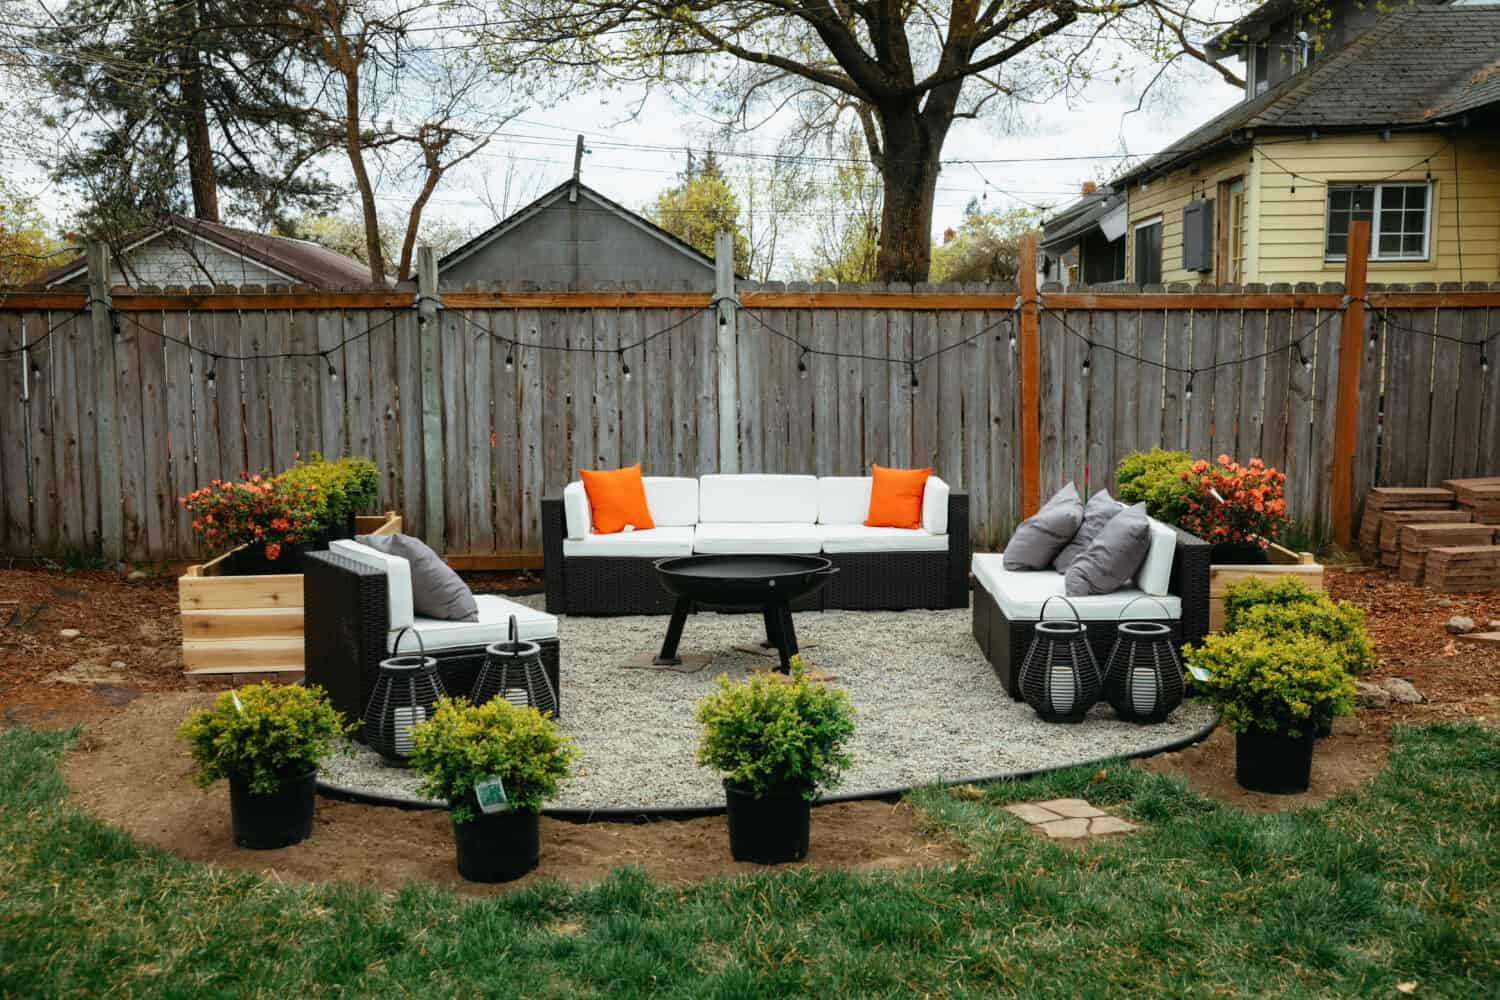 Filling homemade fire pit with plants and flowers - TheMandagies.com